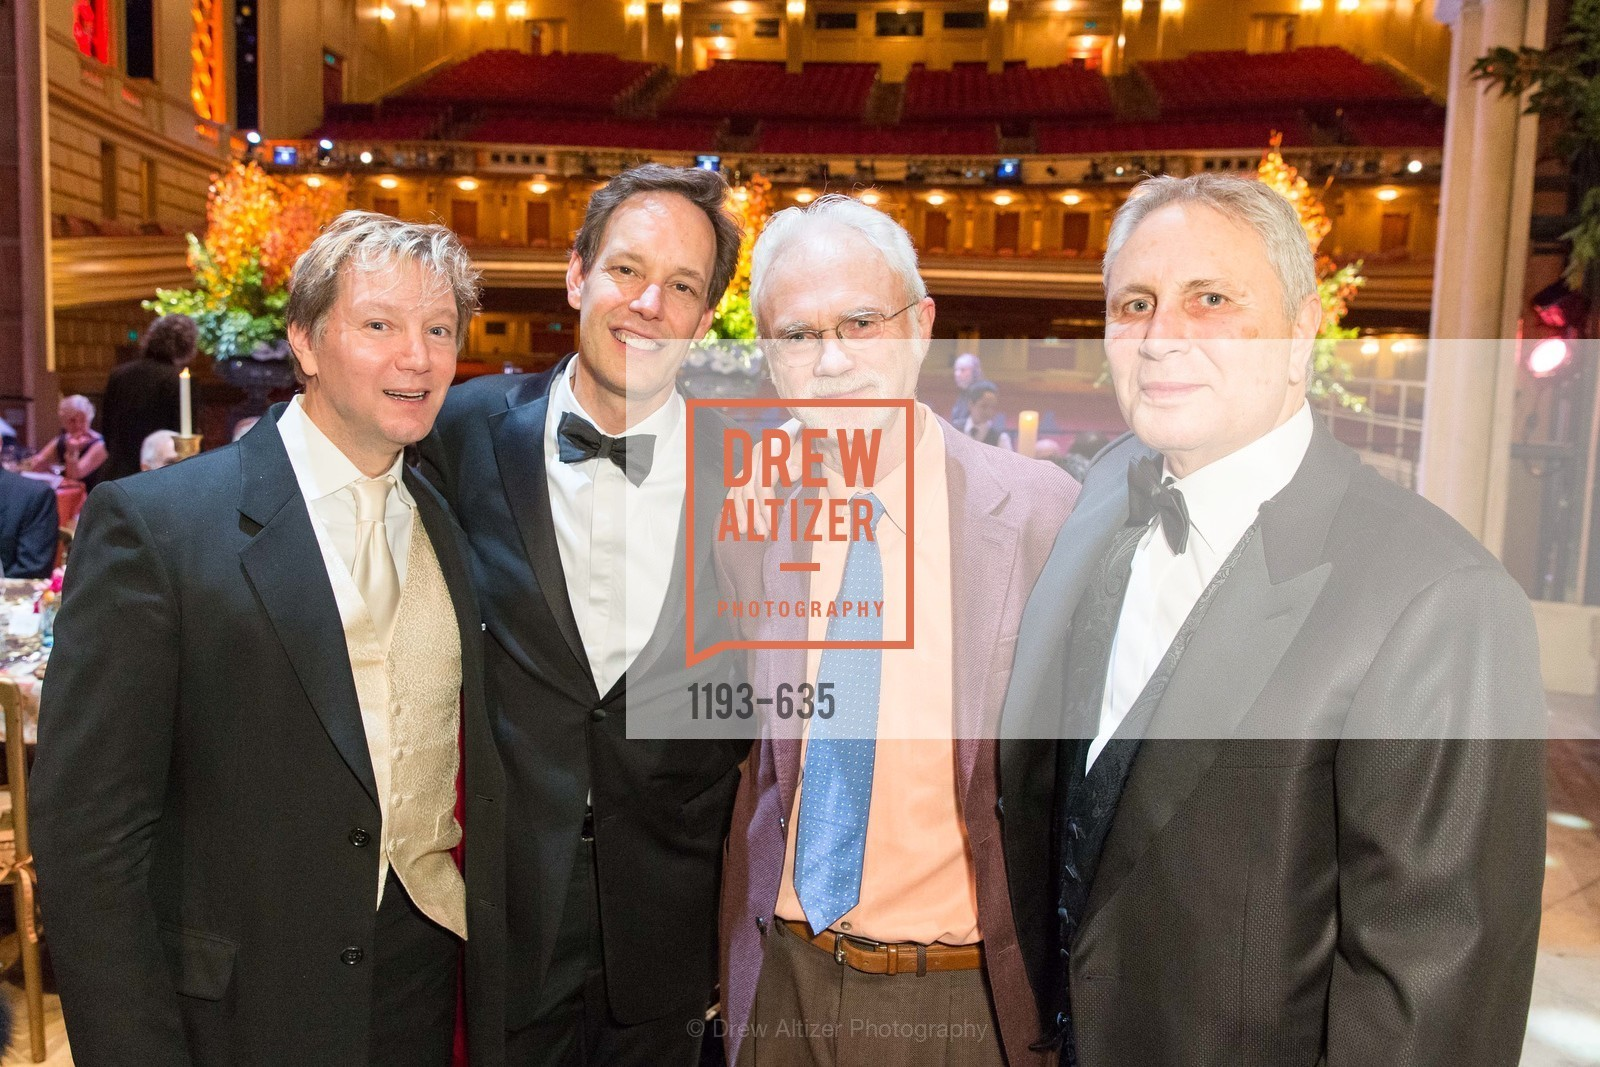 Mark Adamo, Jake Heggie, John Adams, John Corigliano, An Evening on the Stage Honoring Renaissance Man Gordon Getty, War Memorial Opera House. 301 Van Ness Ave, December 7th, 2015,Drew Altizer, Drew Altizer Photography, full-service event agency, private events, San Francisco photographer, photographer California